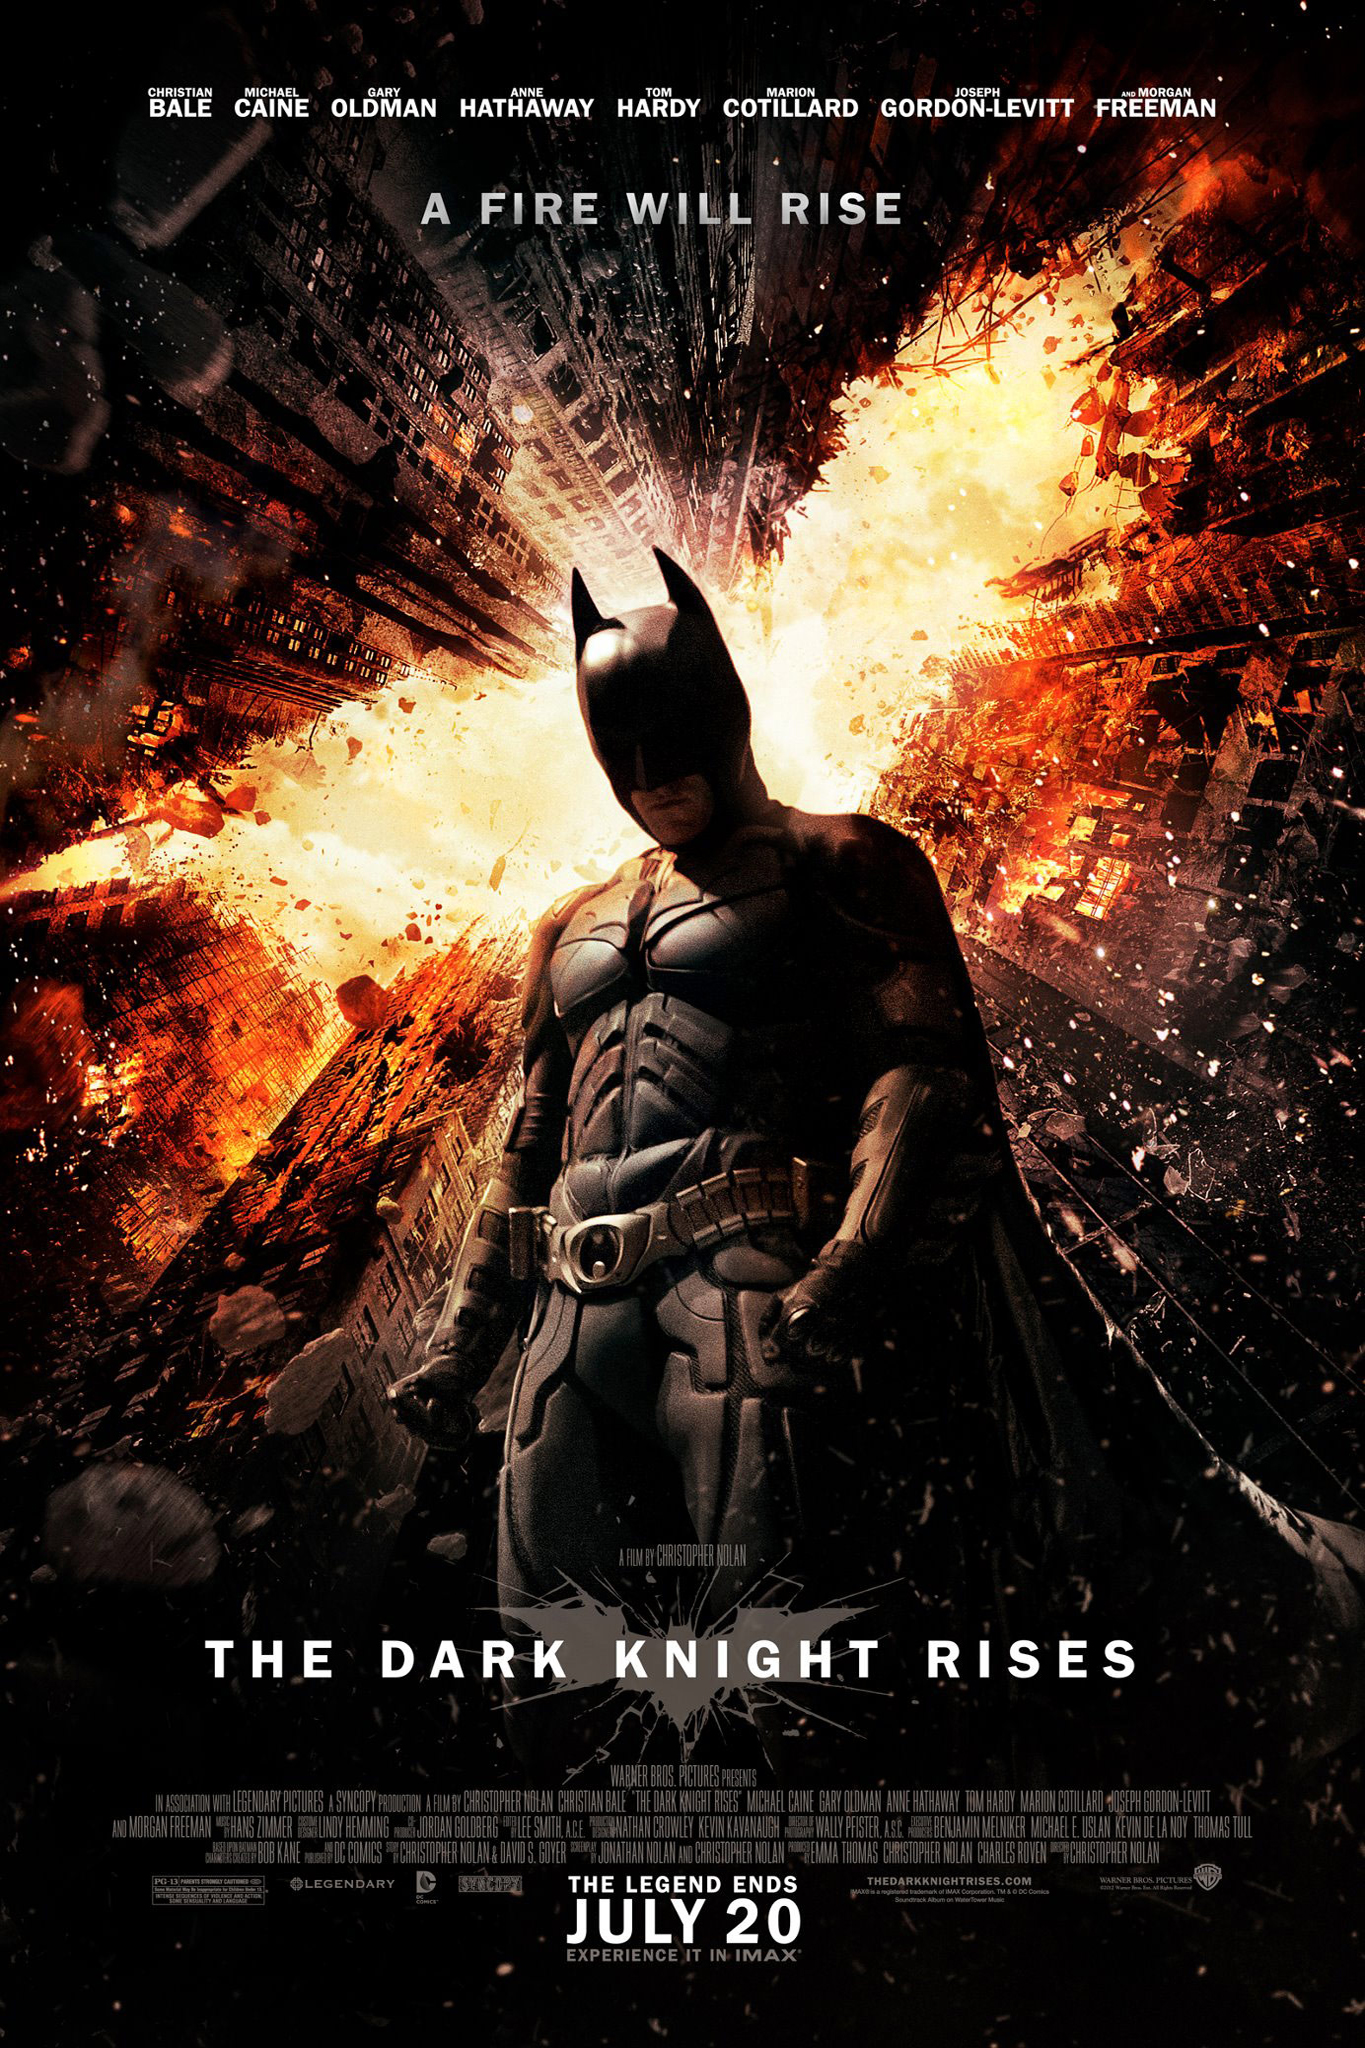 Poster for Dark Knight Rises, The